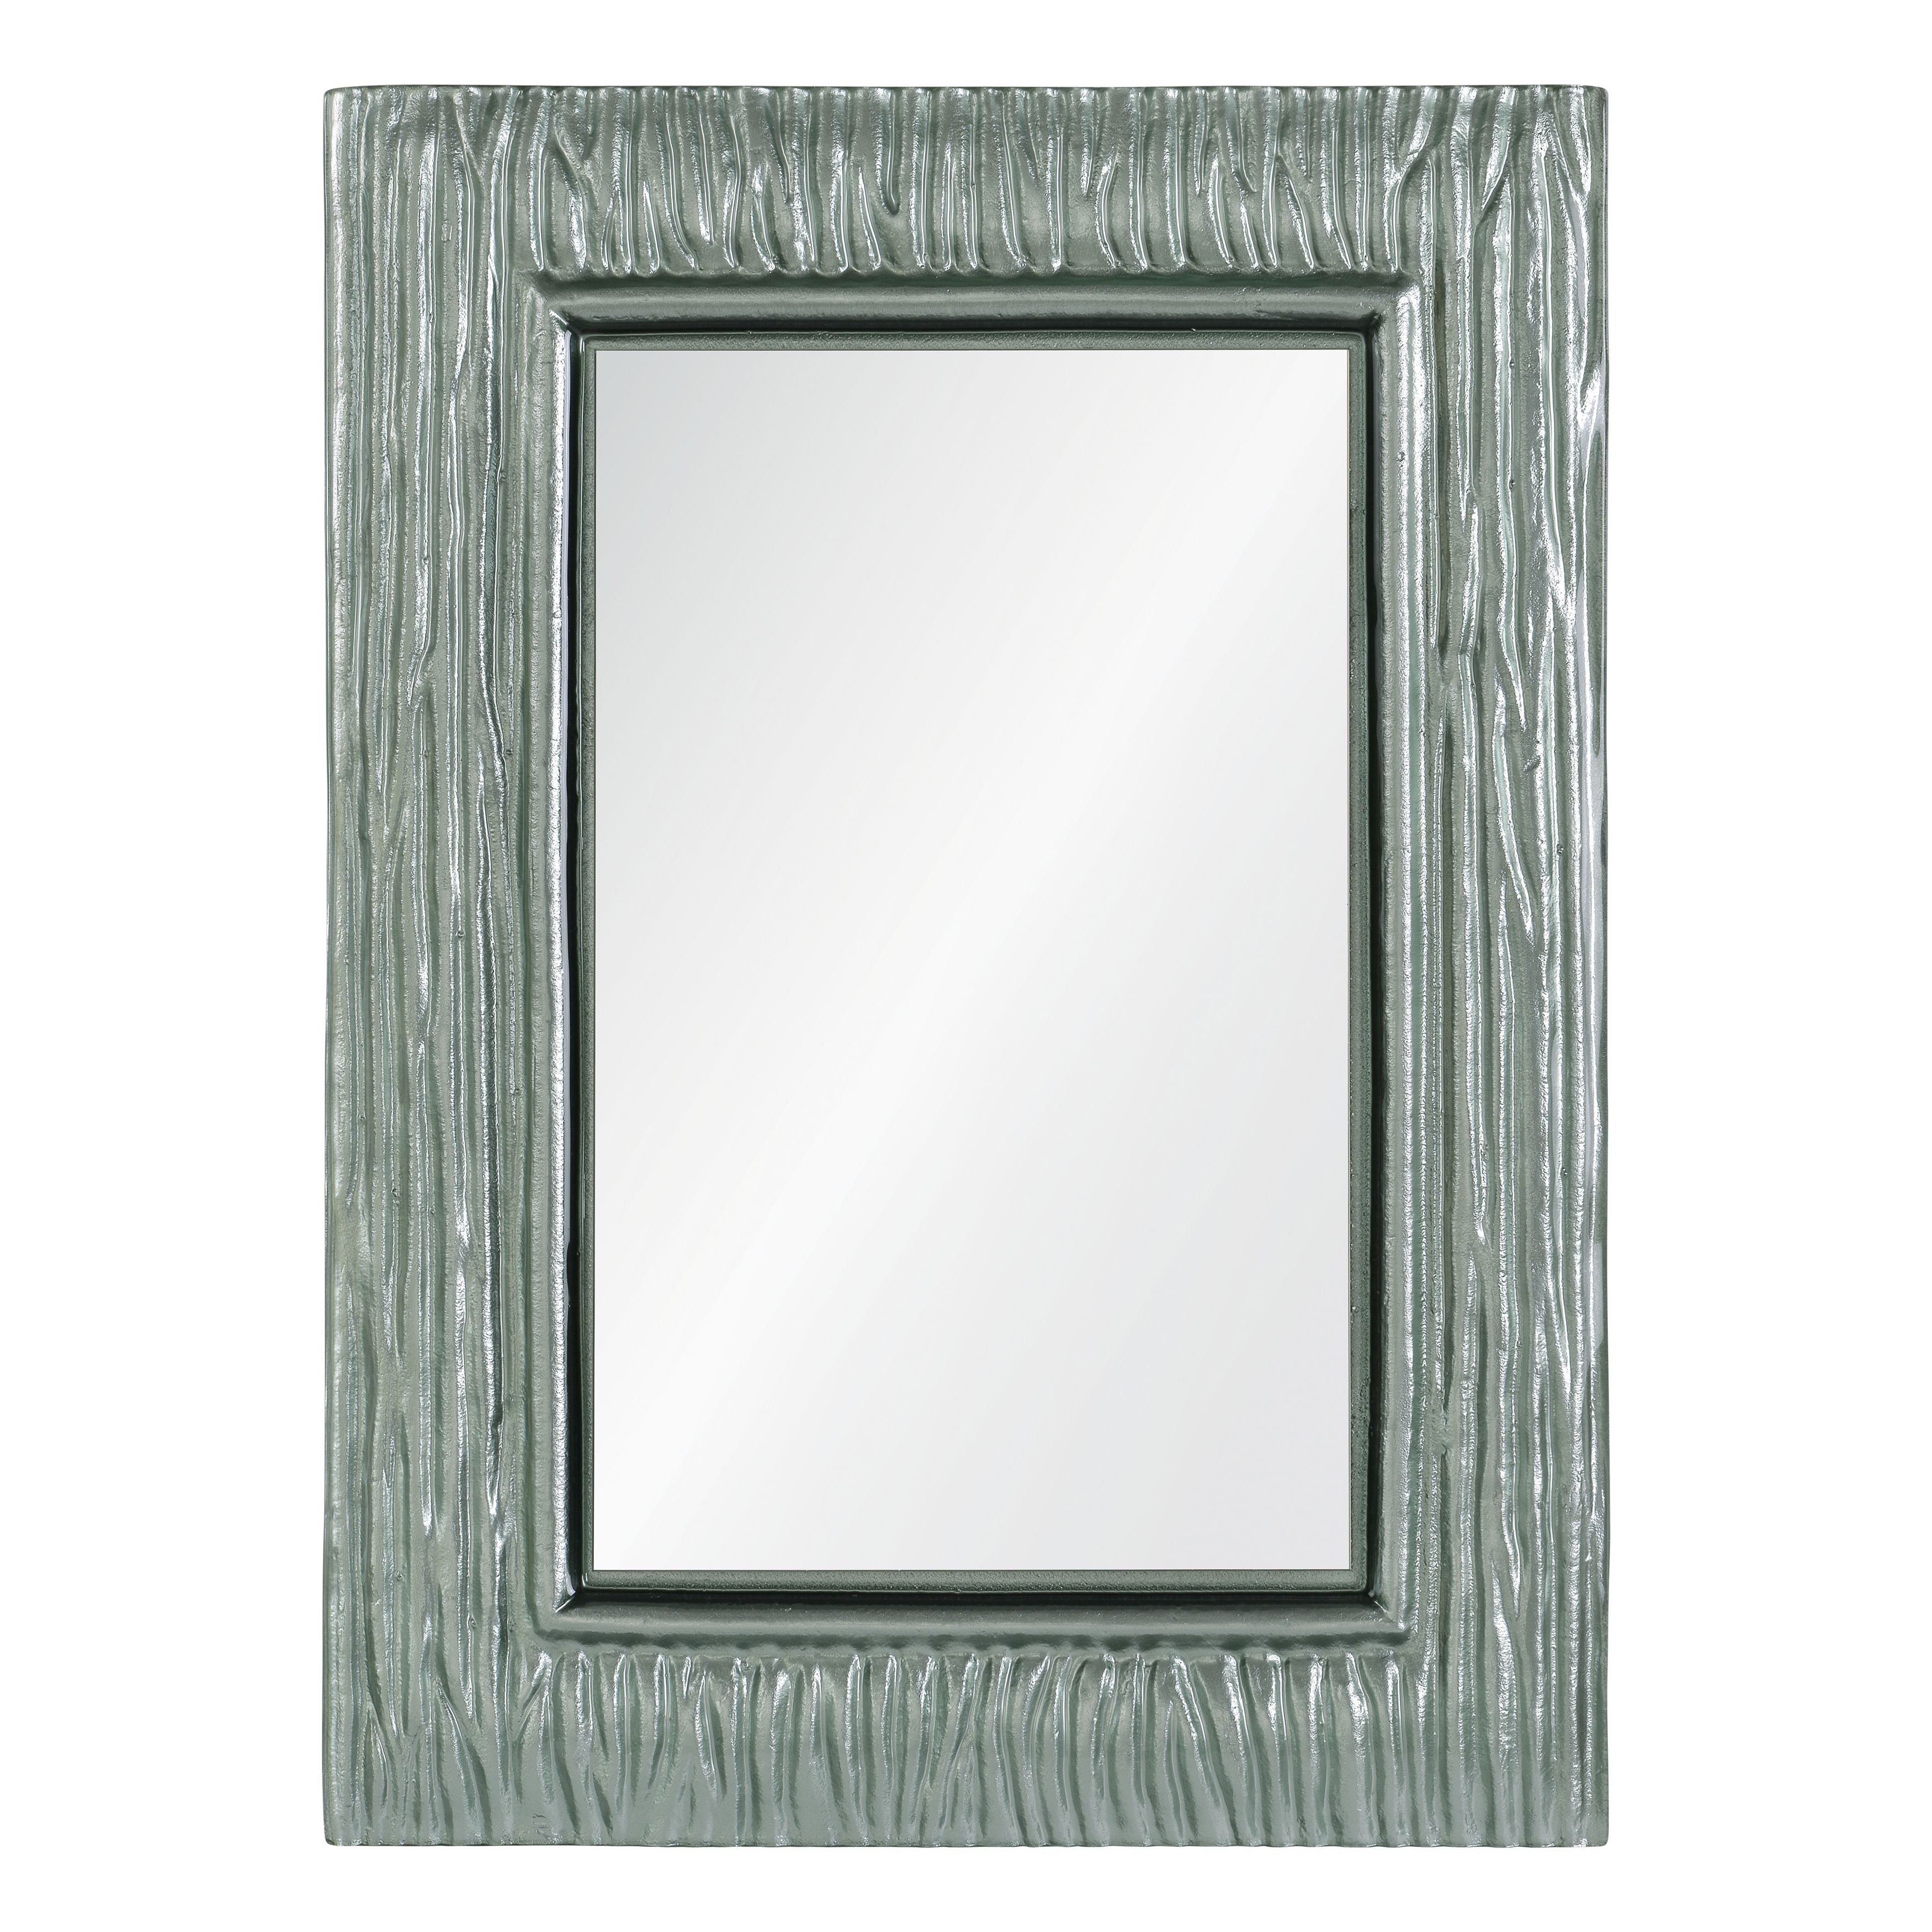 Silver colored glass with a motled texture frame this rectagular ...